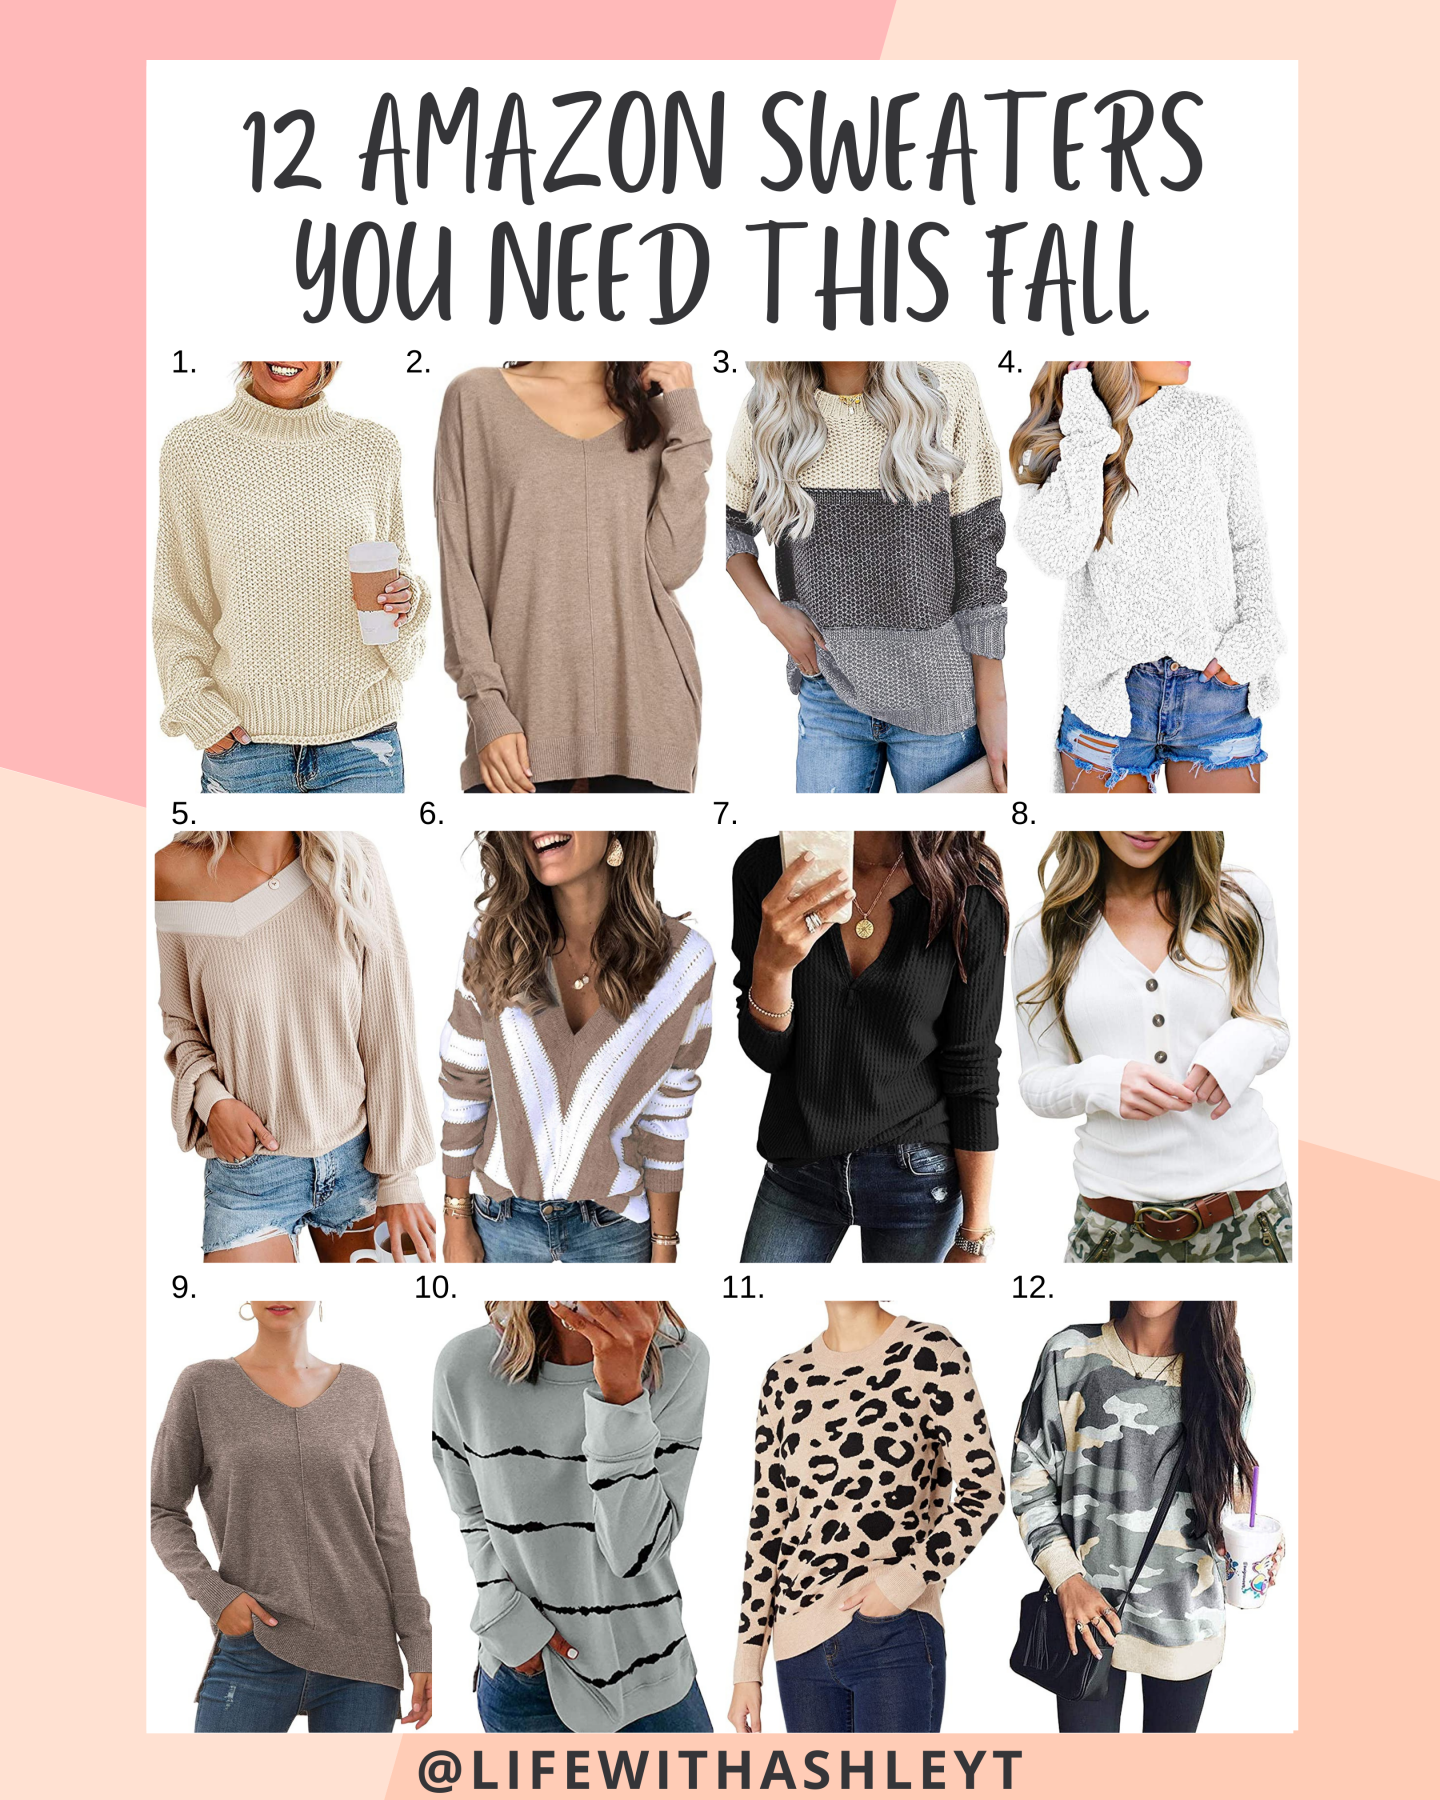 12-amazon-sweaters-you-need-this-fall